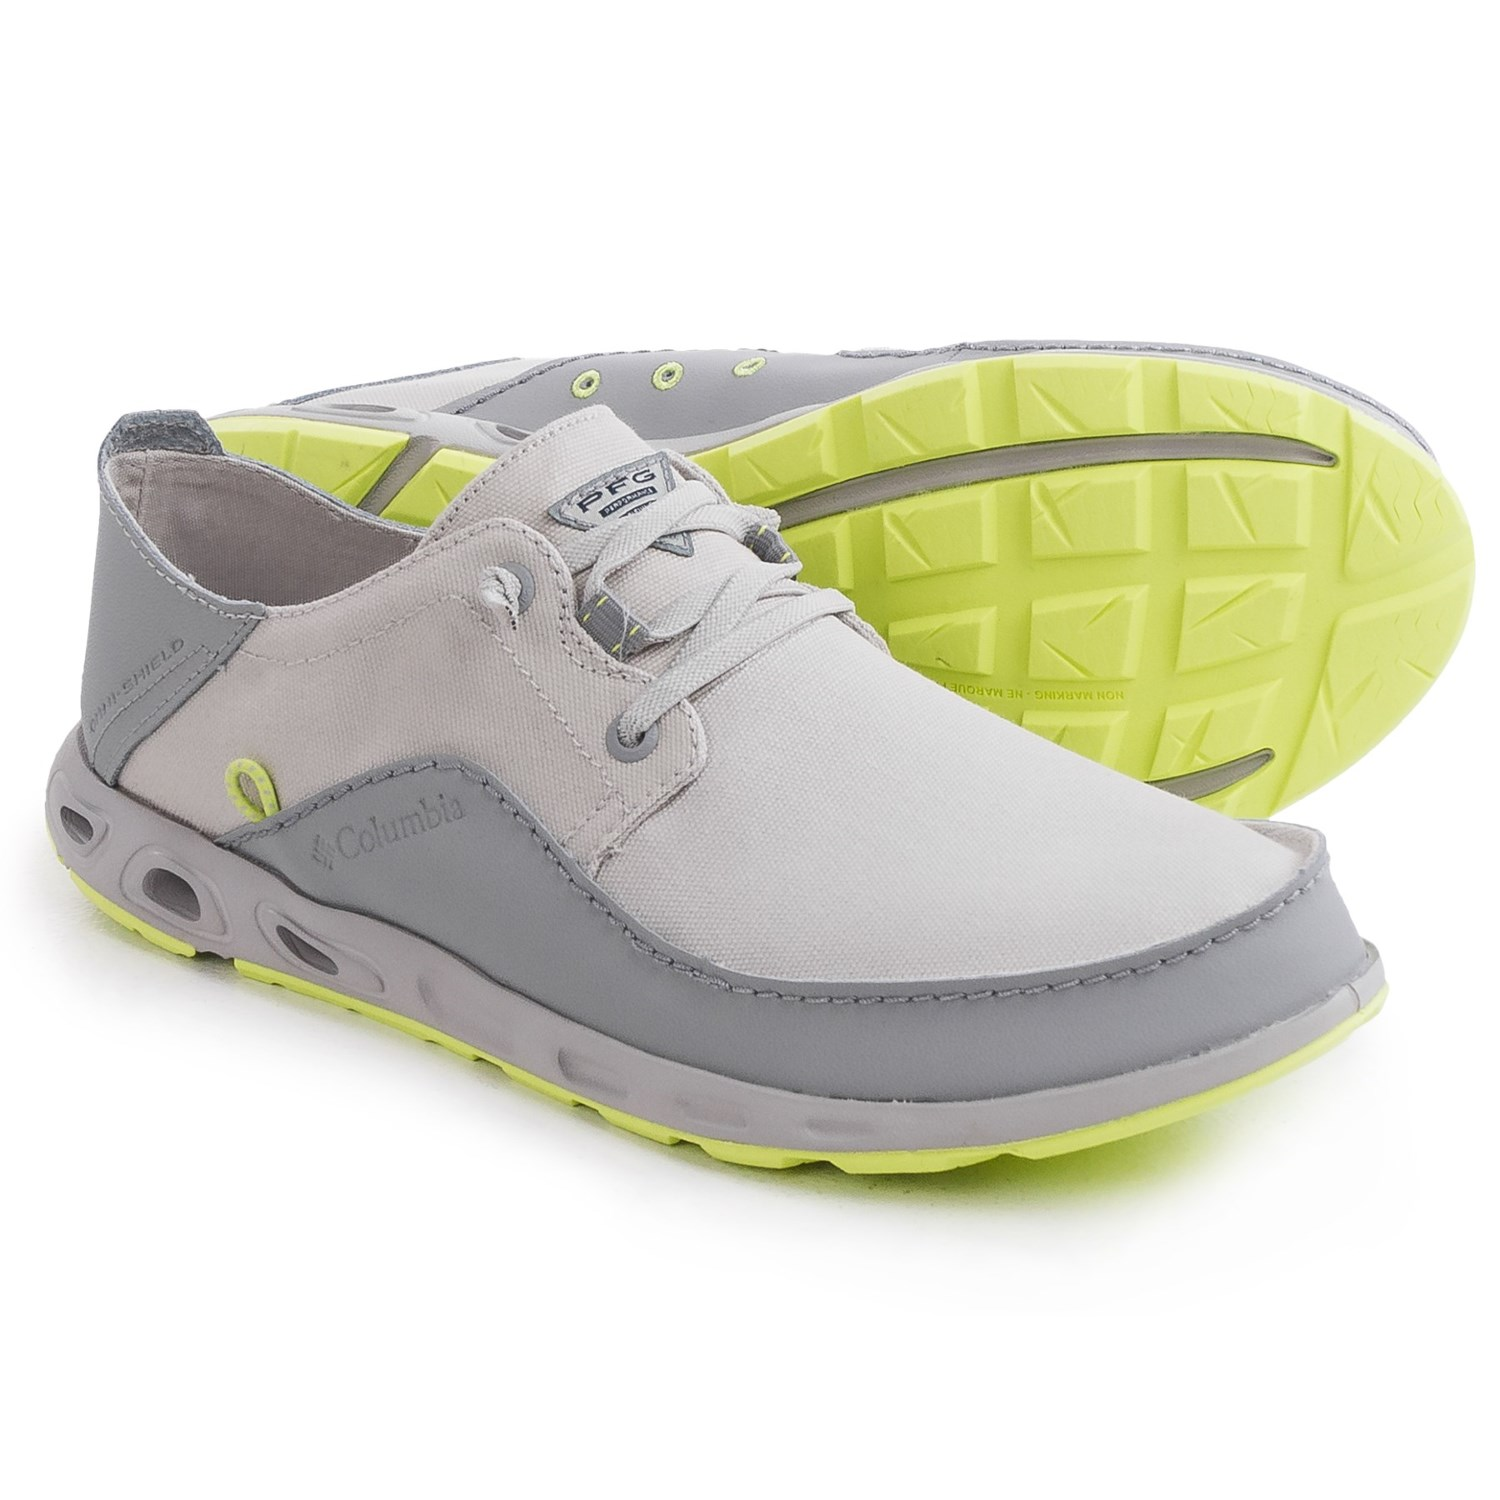 Columbia Bahama Pfg Shoes Taconic Golf Club